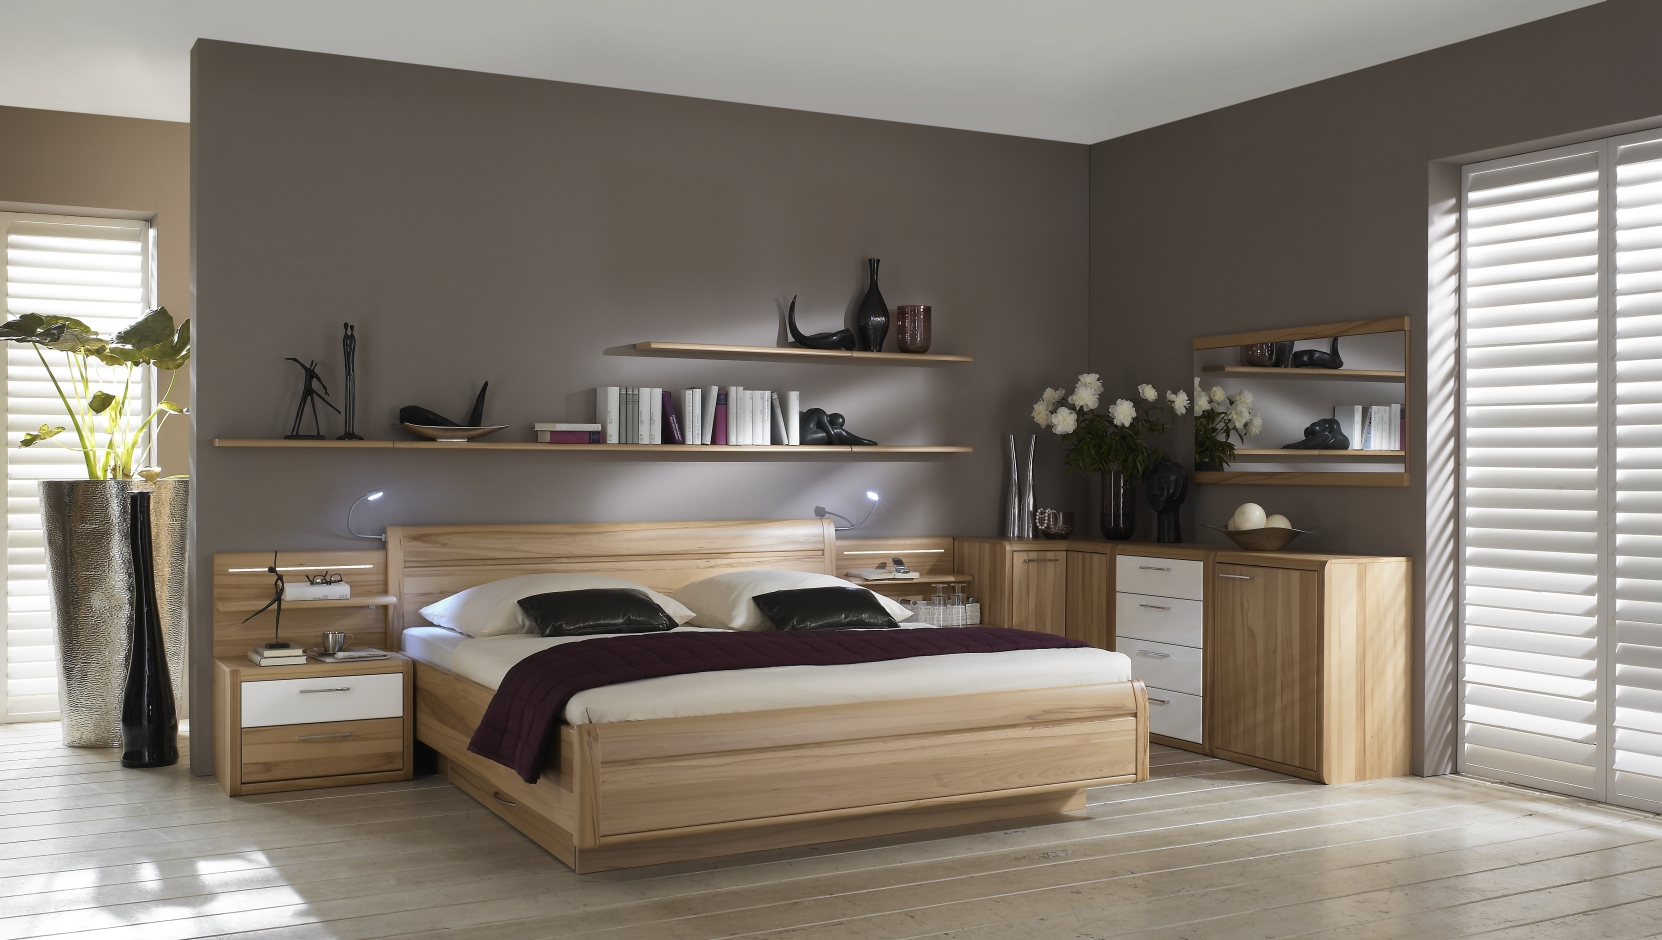 disselkamp schlafzimmer careen cloud 7 g nstig. Black Bedroom Furniture Sets. Home Design Ideas